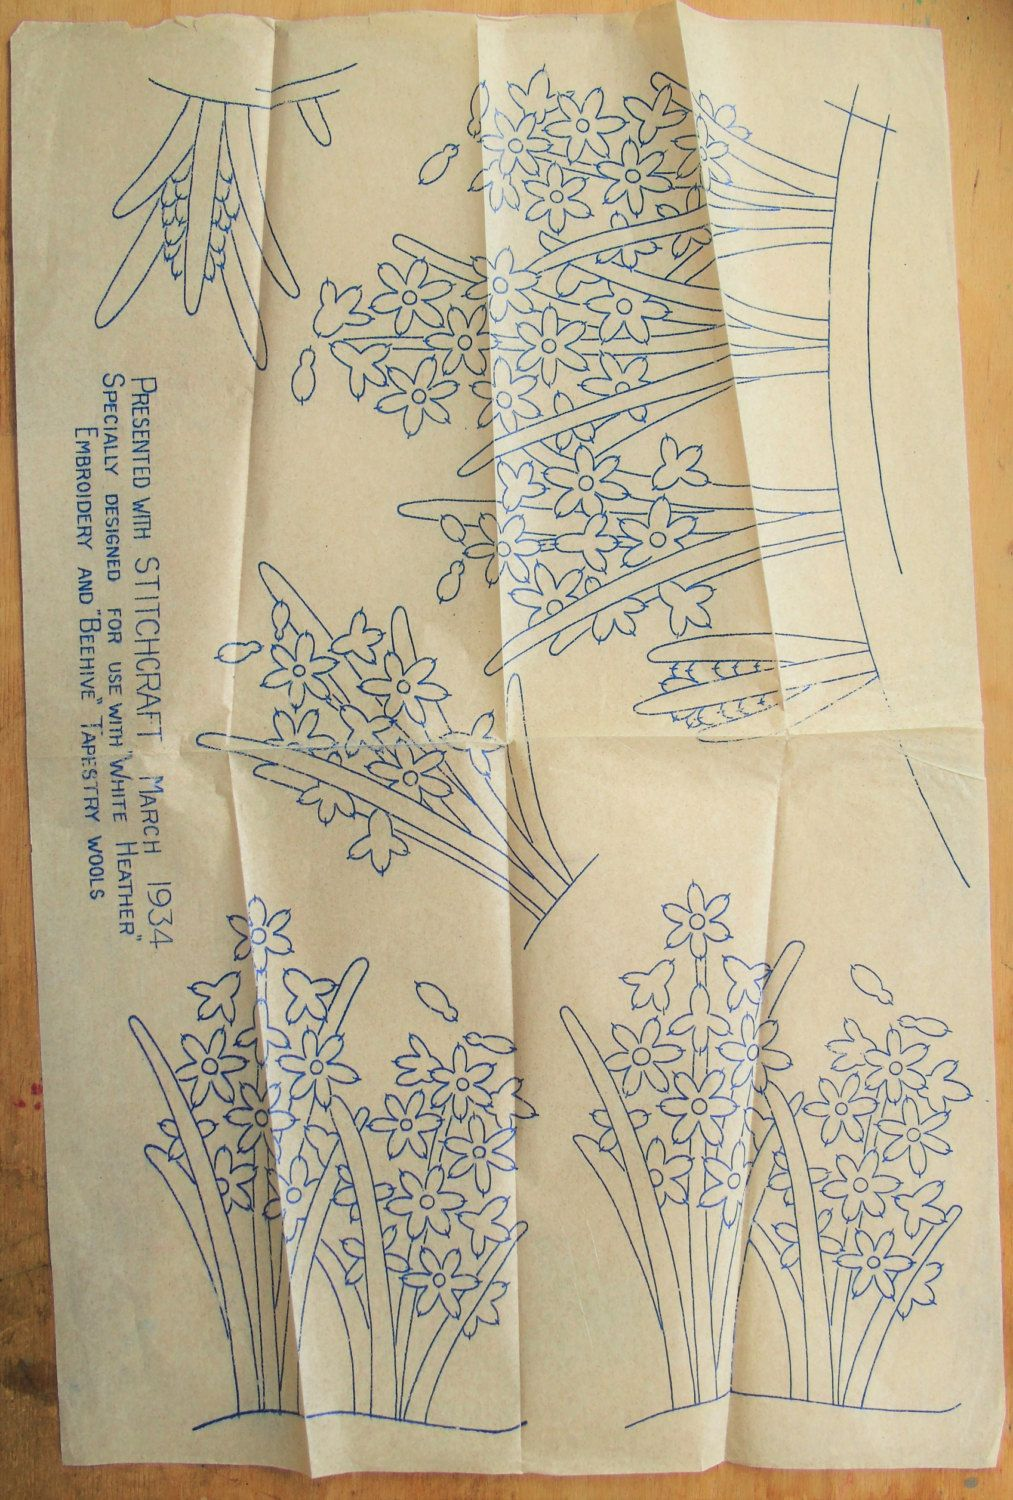 30s floral iron on transfer embroidery transfer pattern 30s floral iron on transfer embroidery transfer pattern embroidery pattern old transfer bankloansurffo Gallery